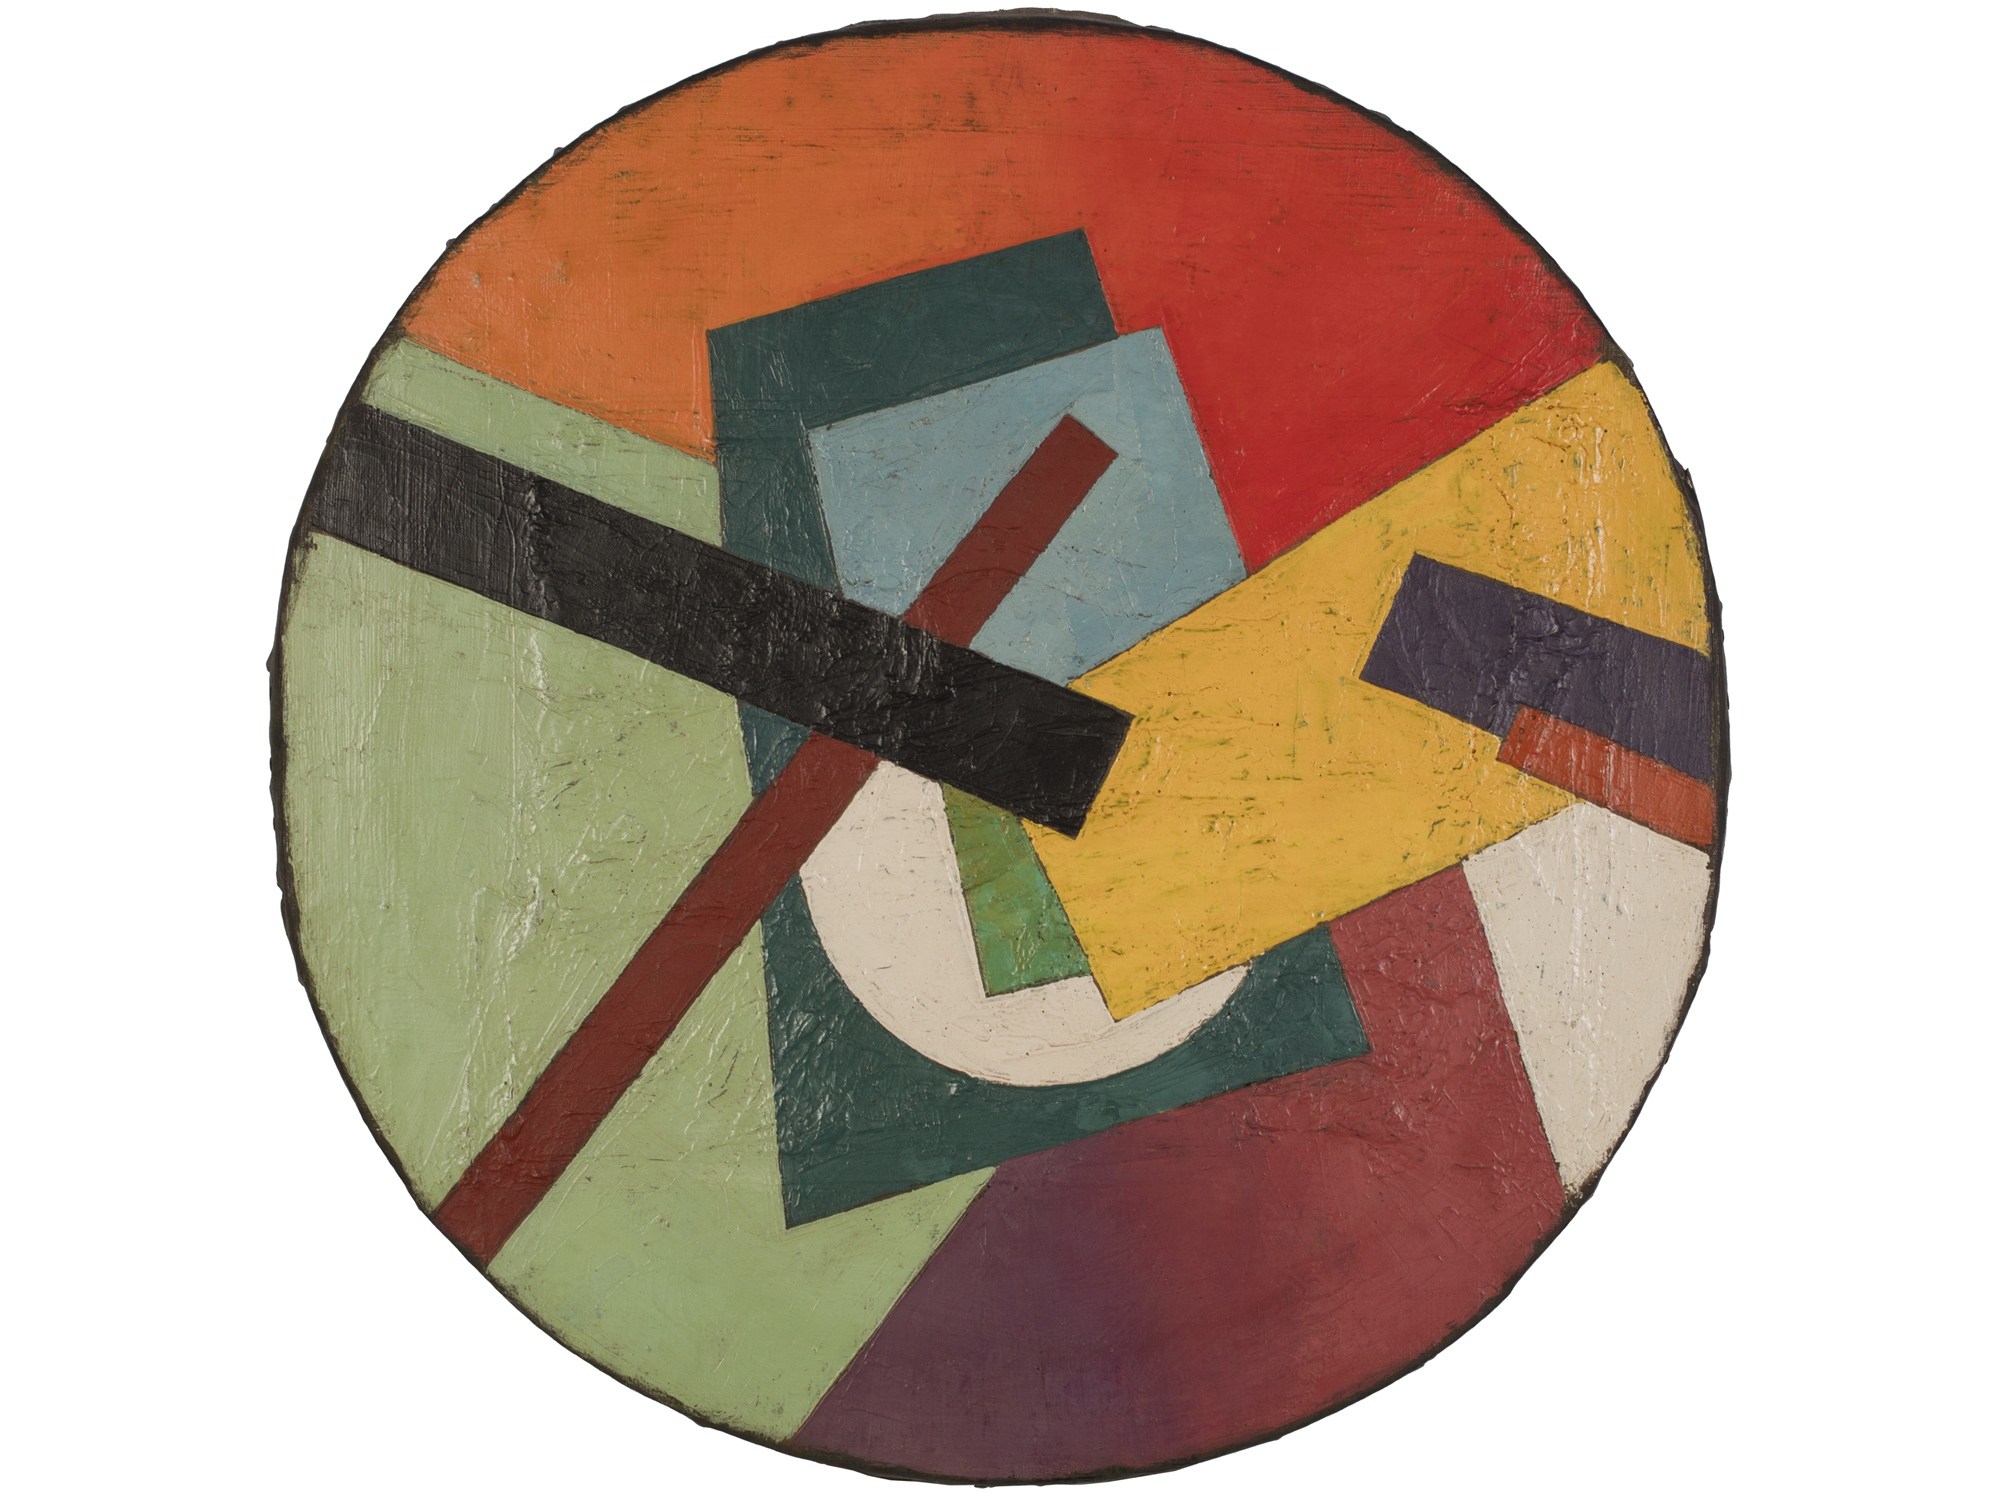 """Unattributed. Unsigned.  In the style of Ivan Kliun.   Text in Russian on reverse translates to """"SUPREMAT SKETCH"""".    Oil on canvas. 50 cm diameter."""